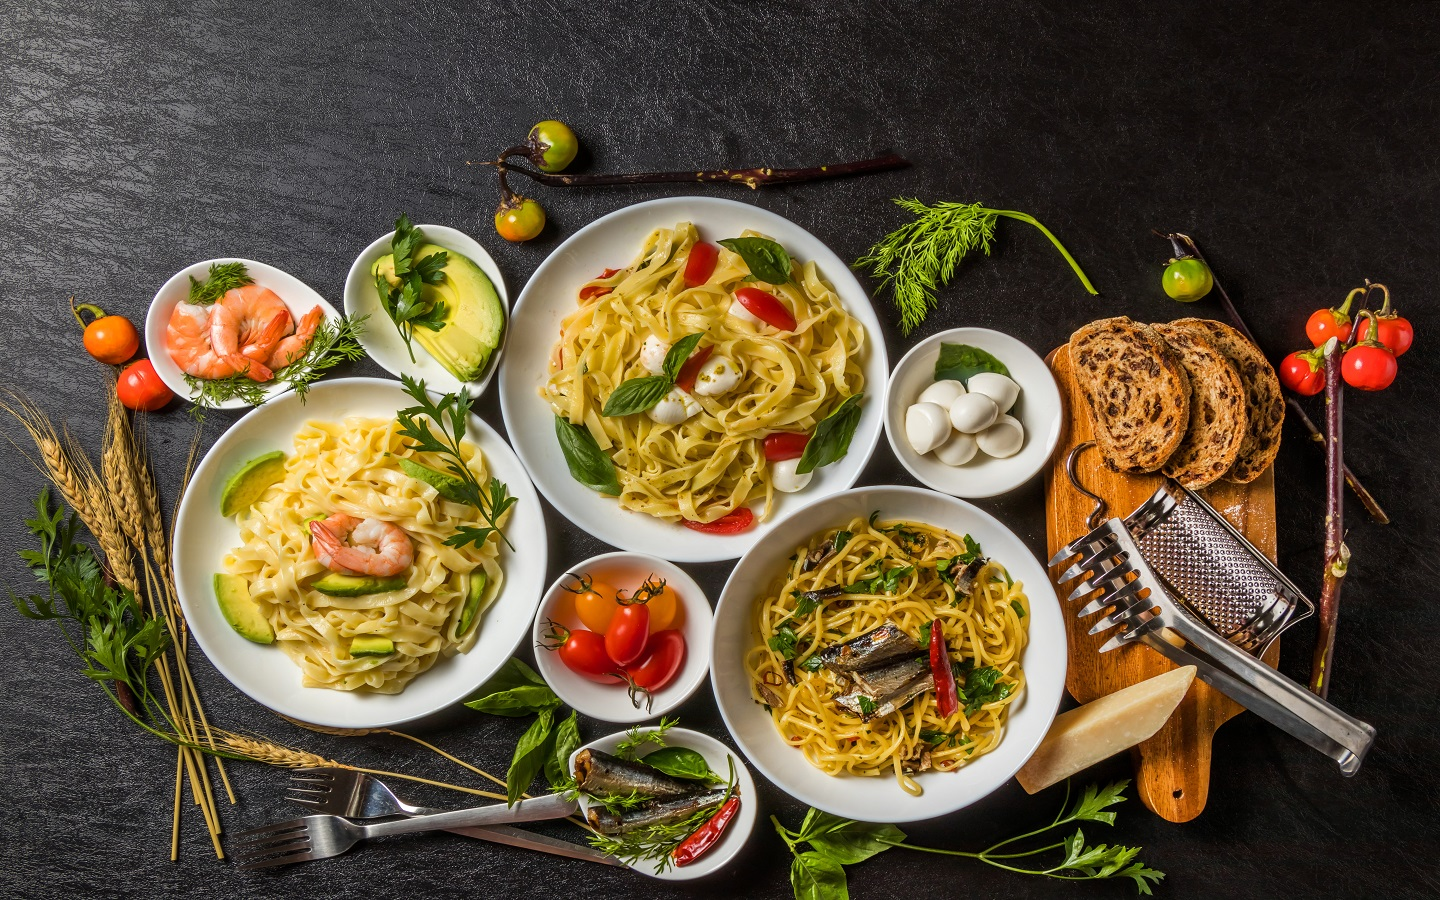 Pasta and side dishes showing Italian food